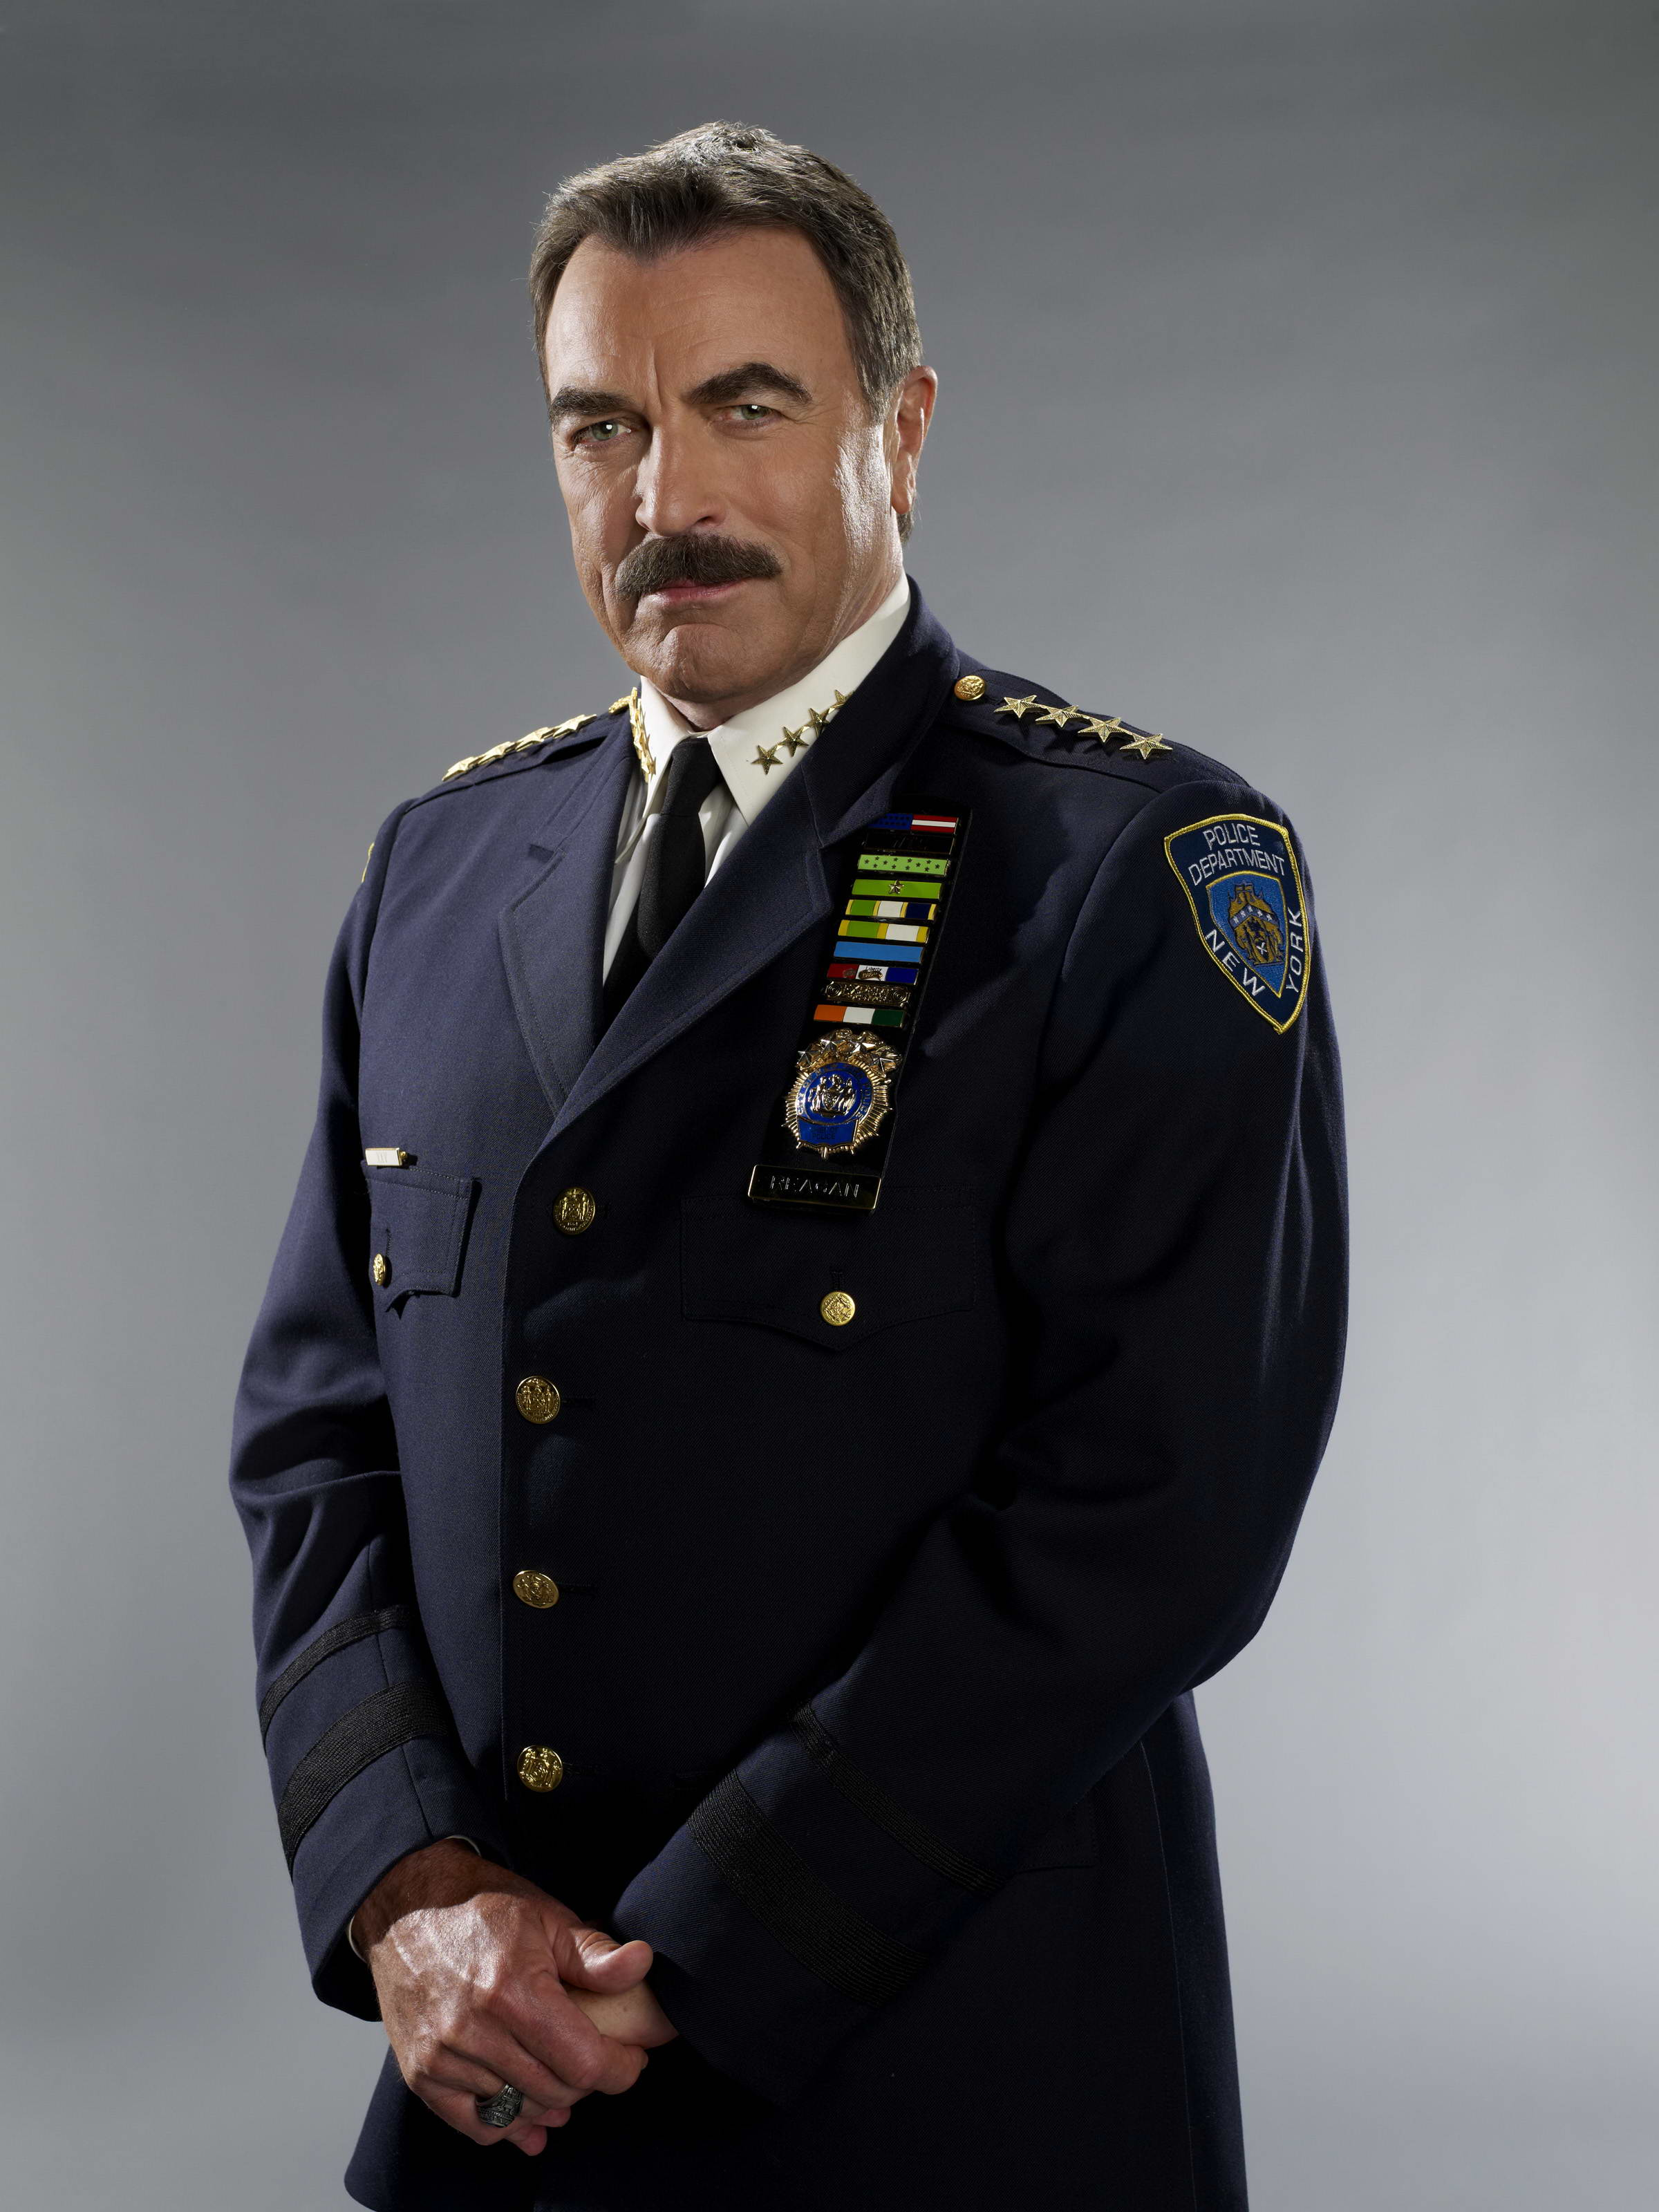 Tom Selleck photo, pics, wallpaper - photo #